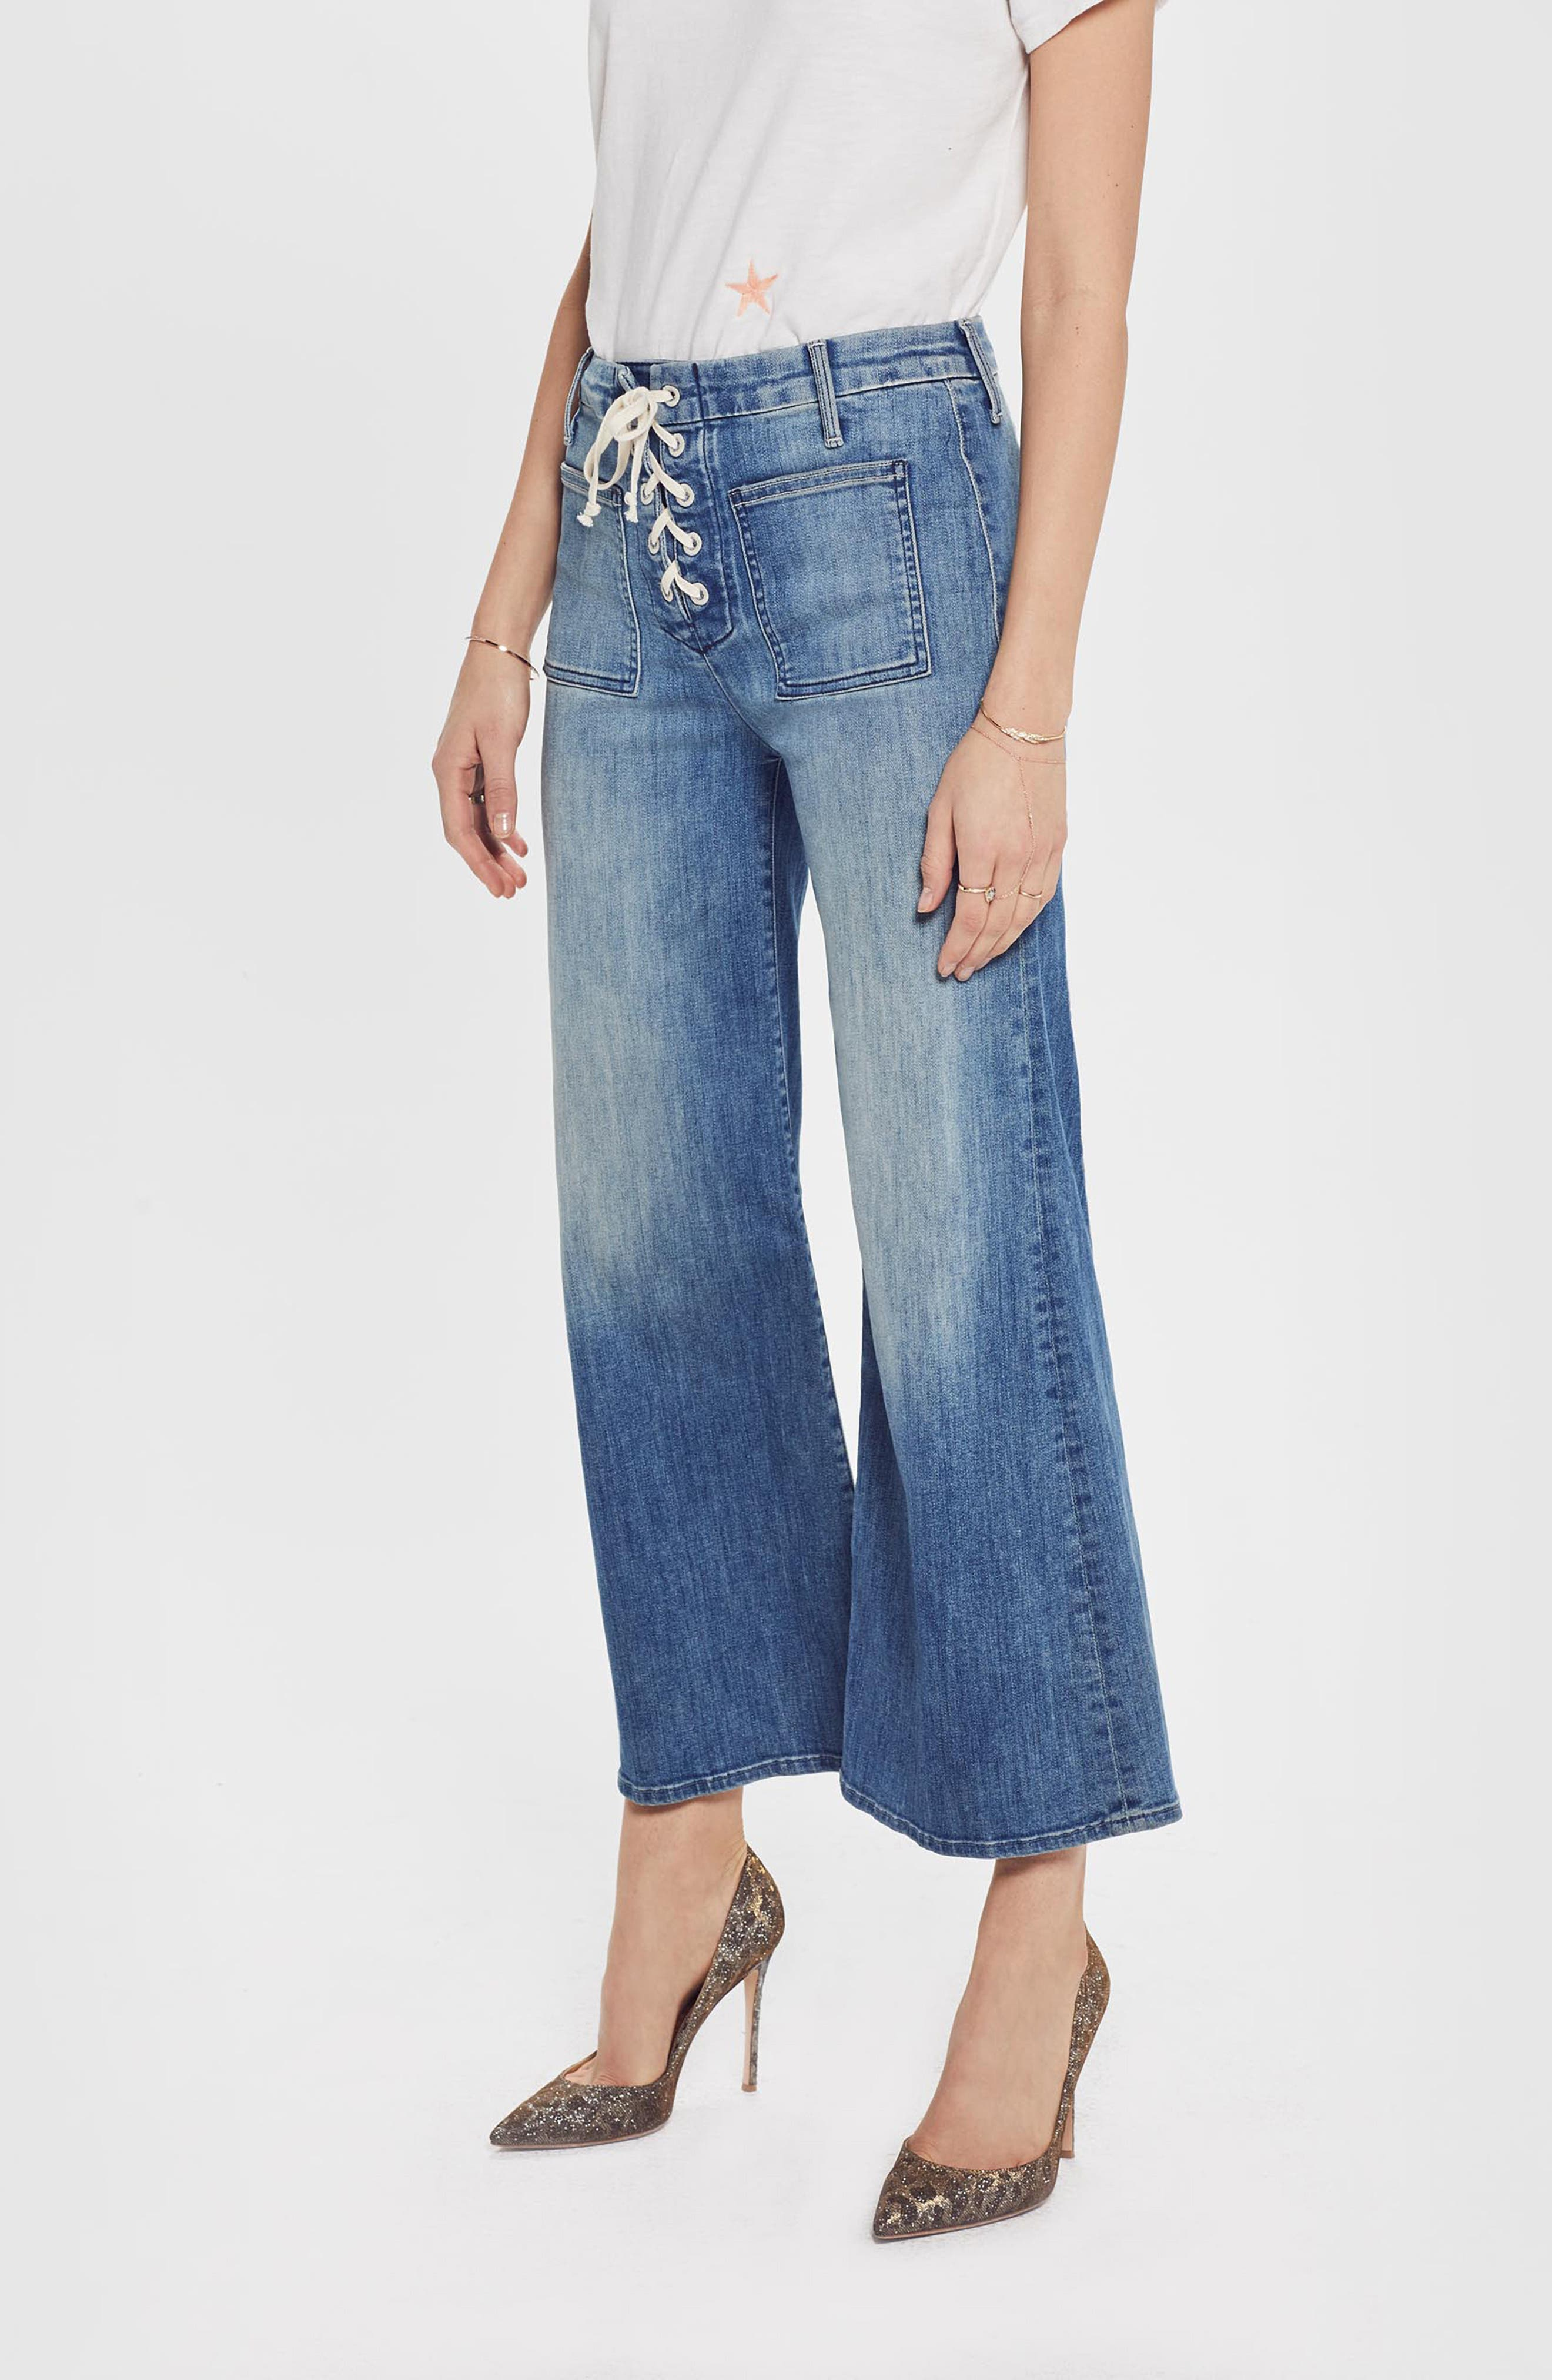 MOTHER, The Lace Up Crop Flare Jeans, Alternate thumbnail 4, color, WHERE THERES SMOKE